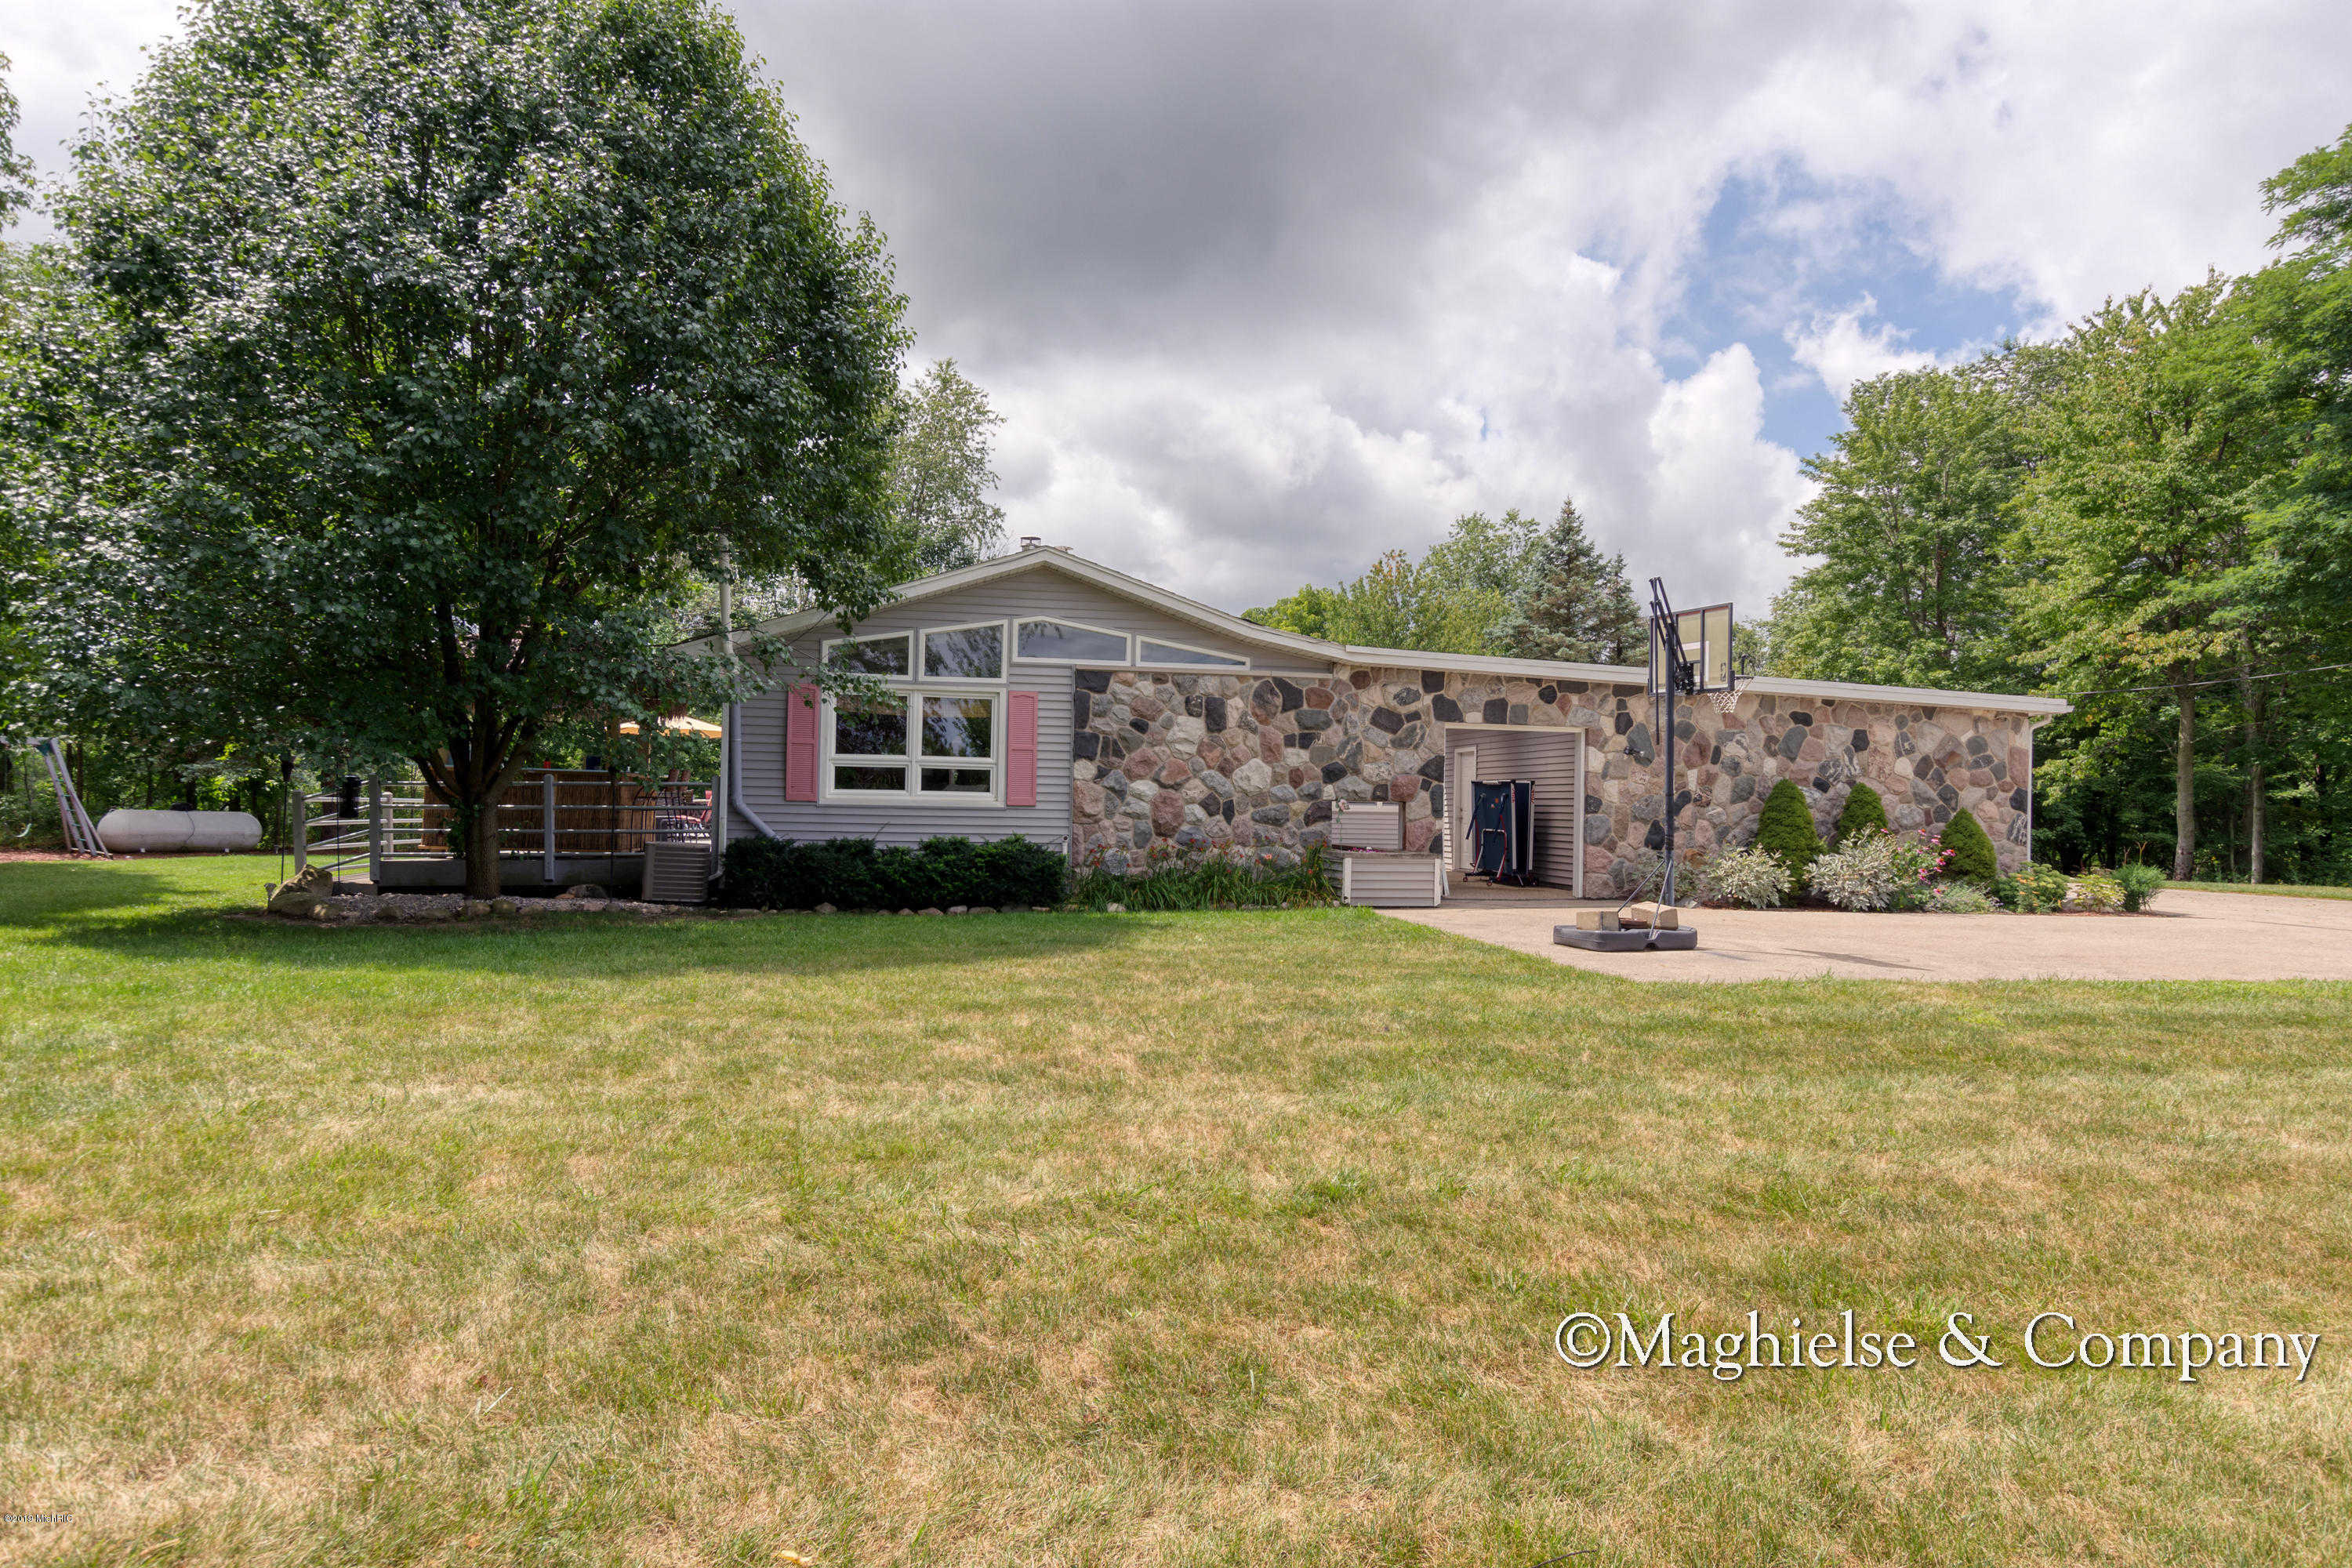 8280 Cannonsburg Rd NE, Ada, MI 49301 now has a new price of $410,000!